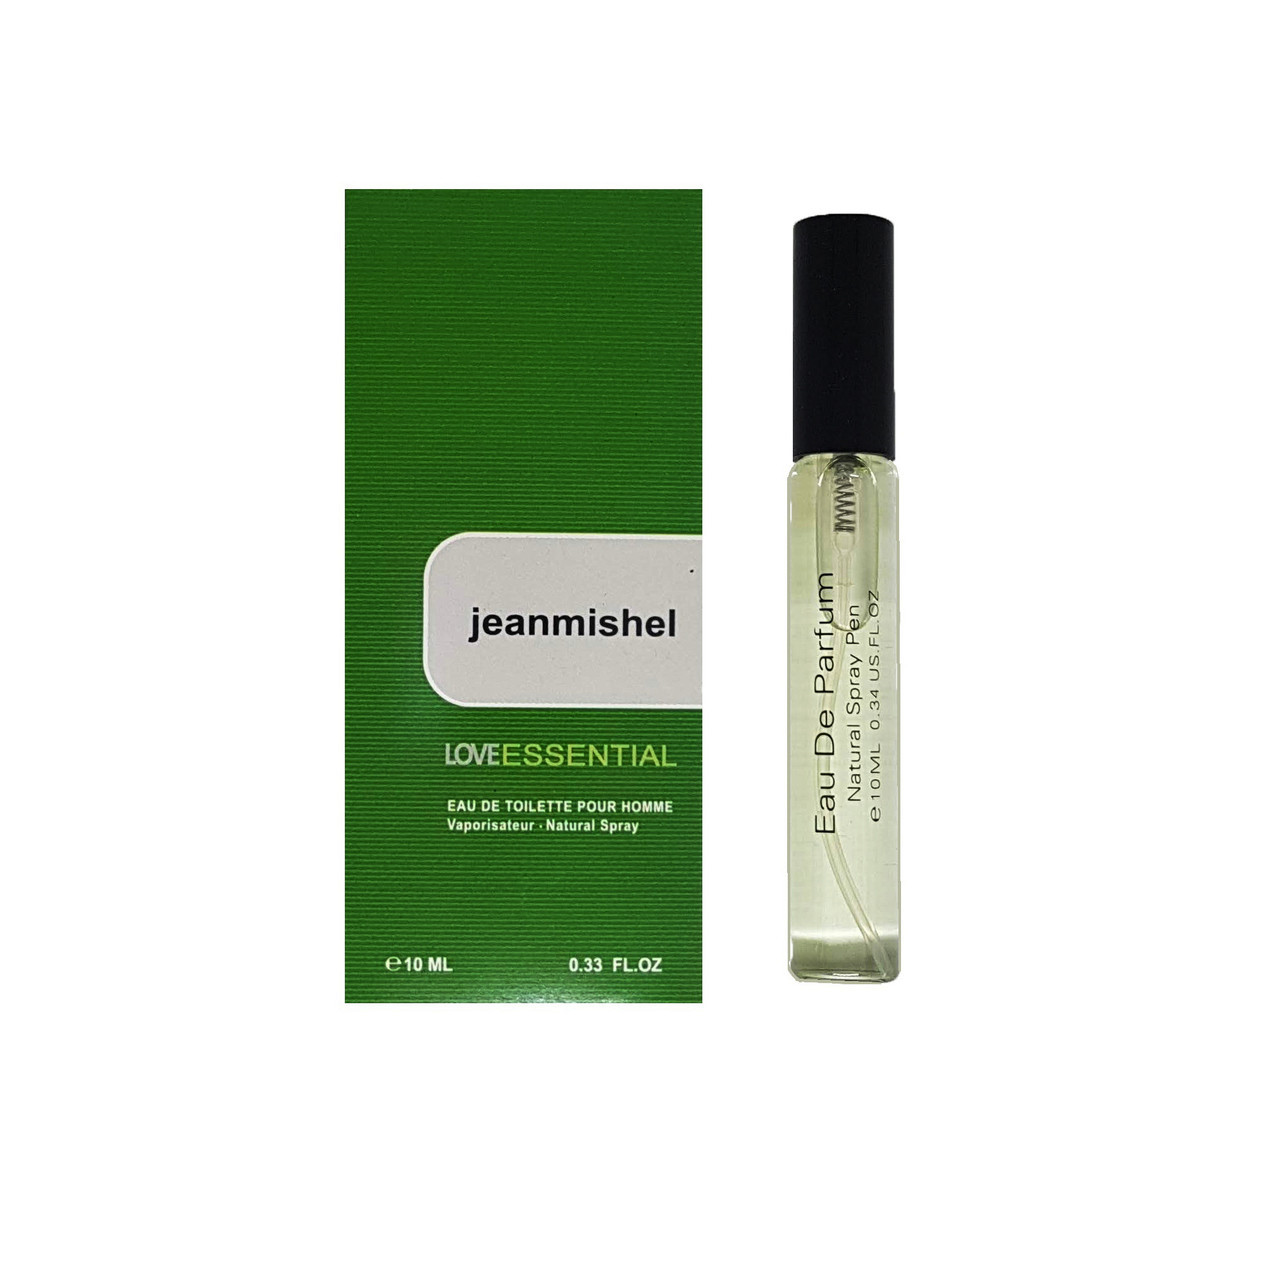 Jeanmishel Love Essential pour homme (56) 10ml